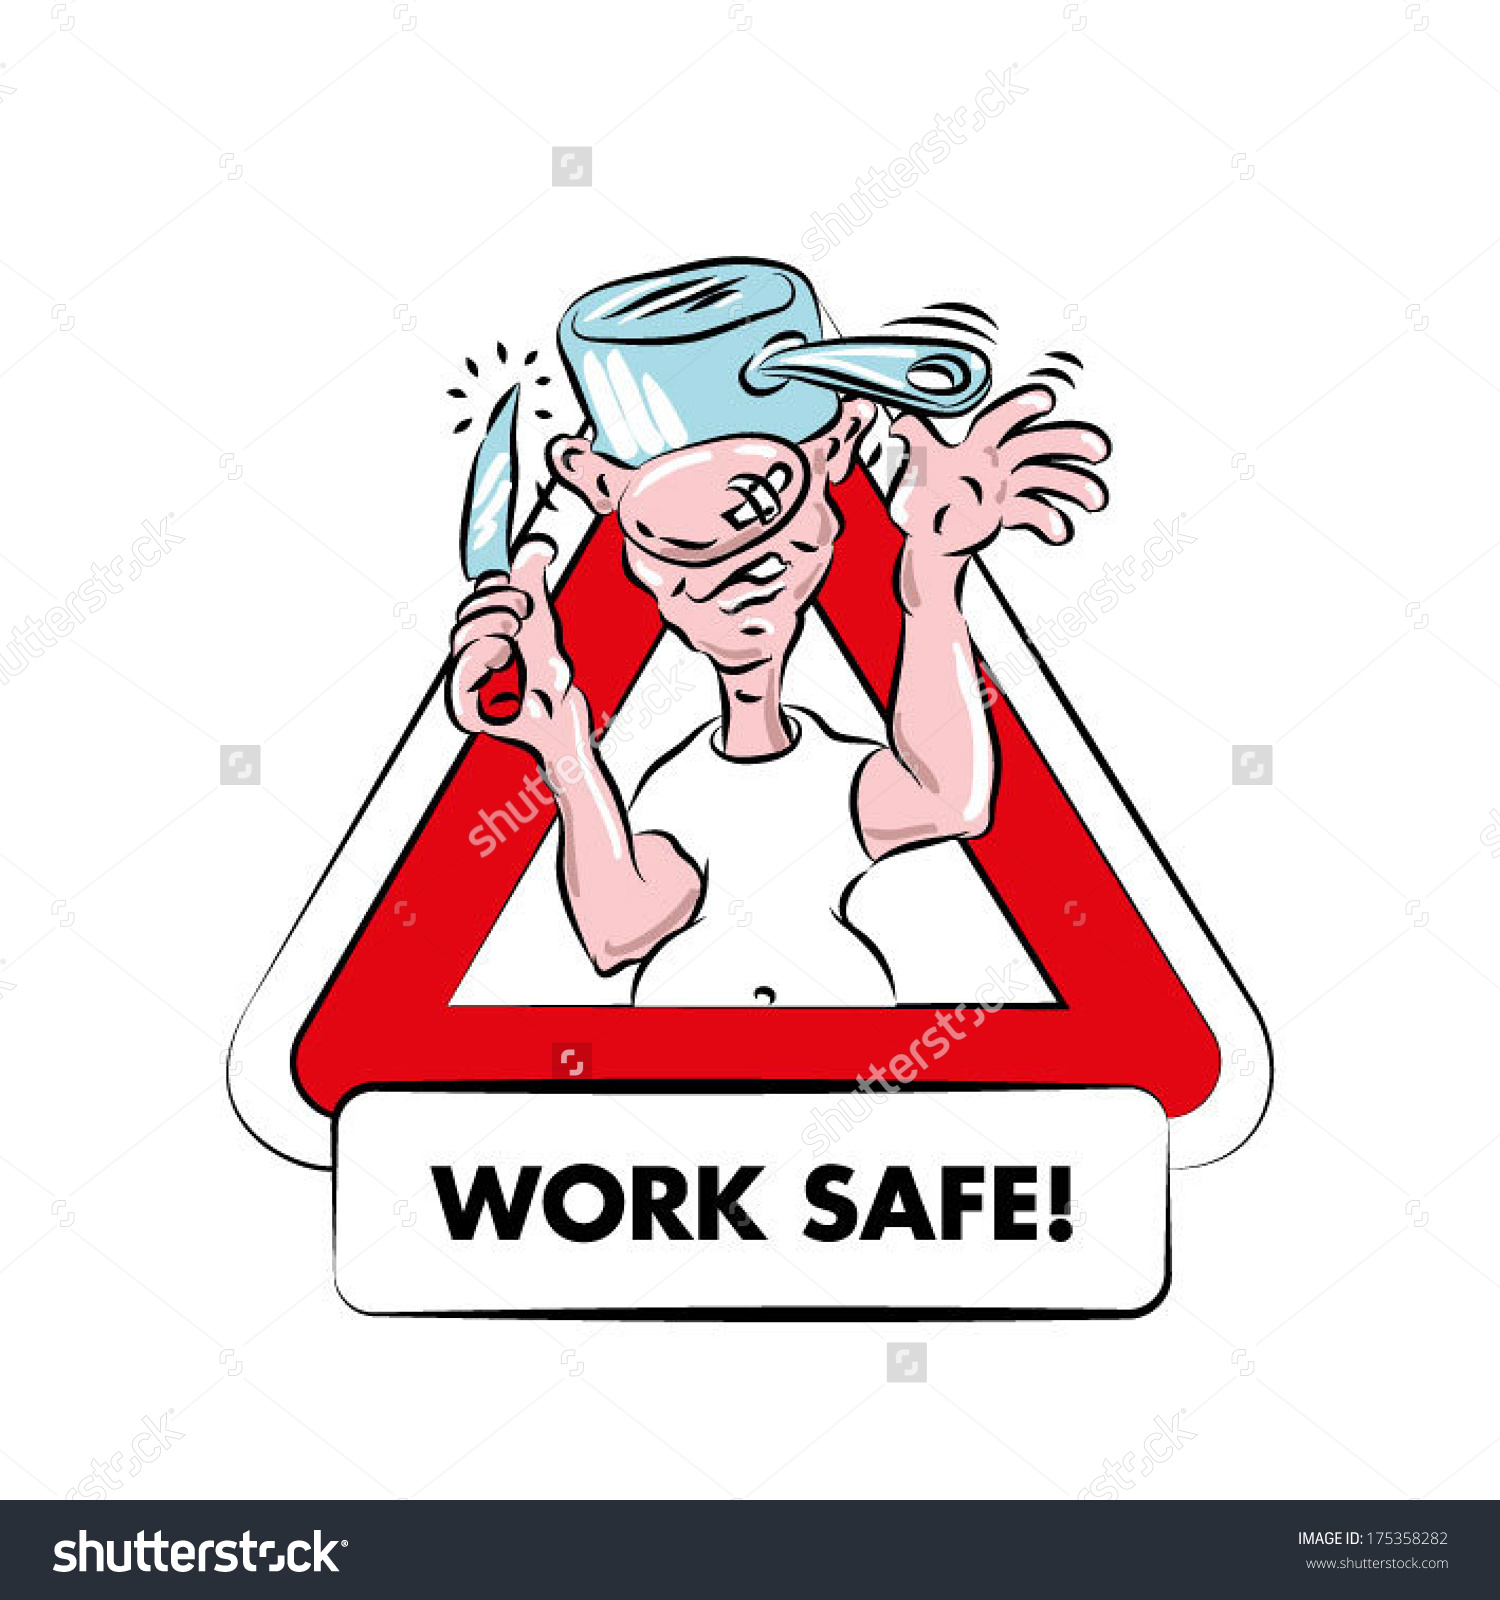 6668 Safety free clipart.